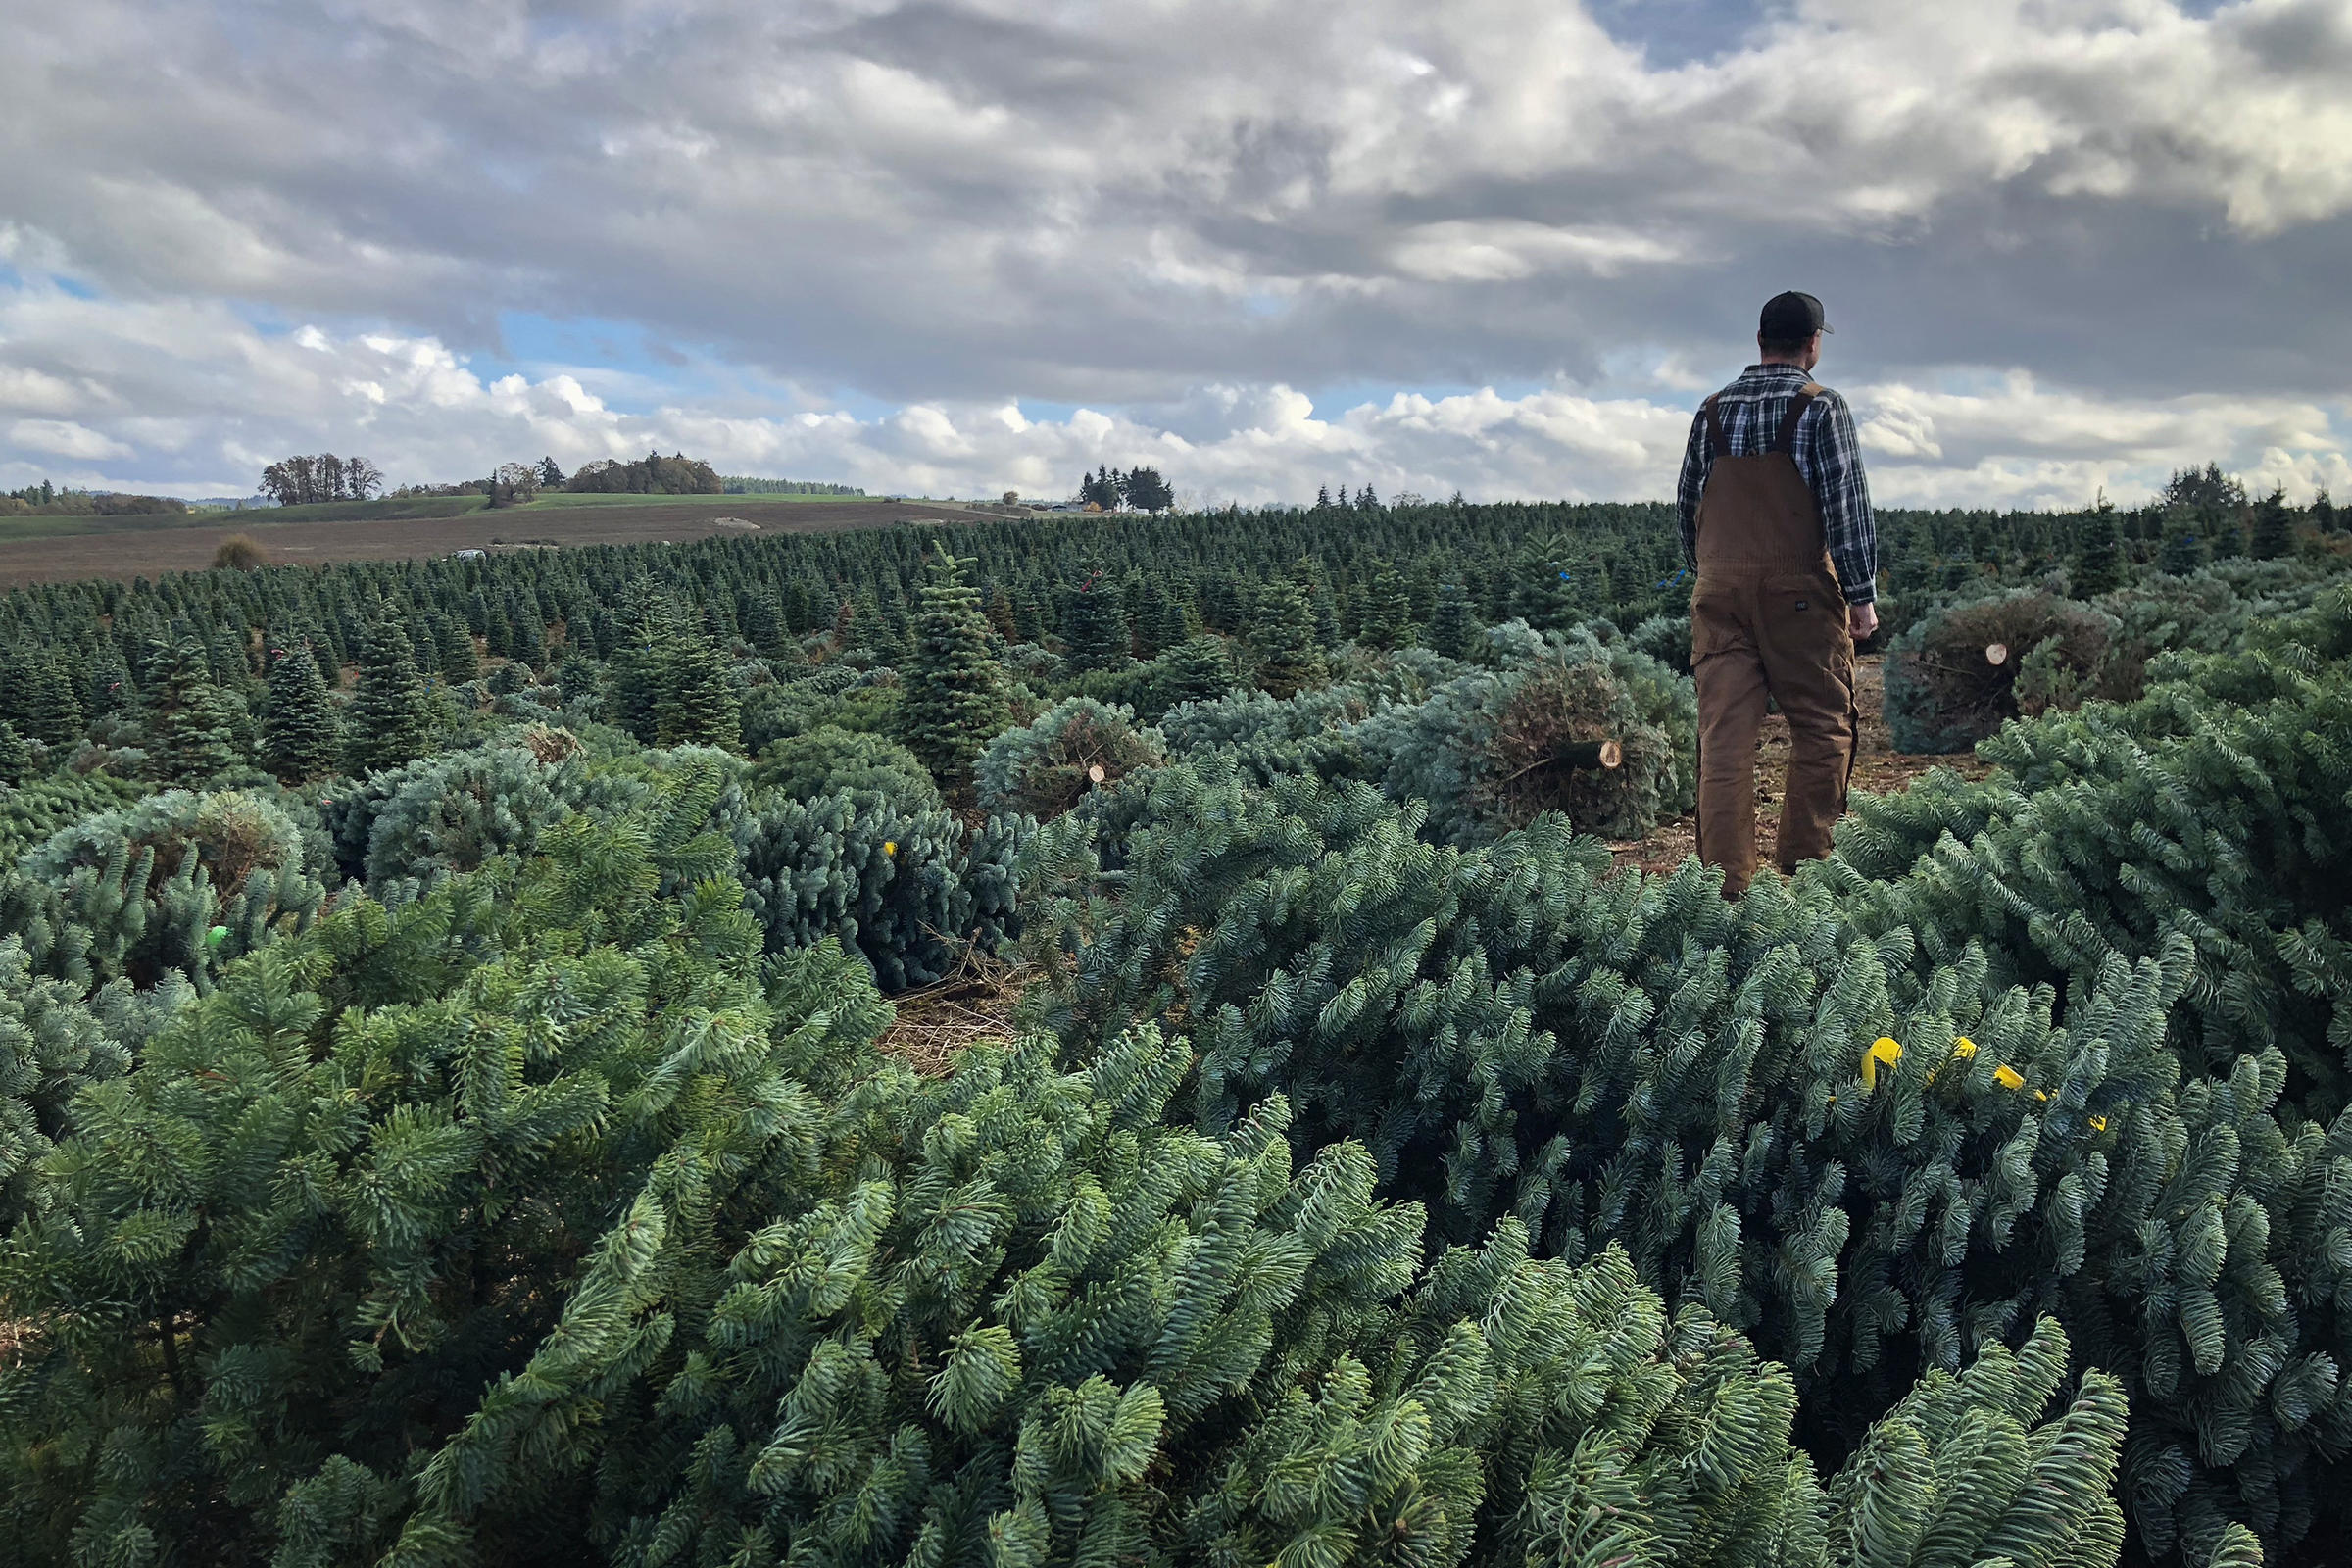 Casey Grogan walks through some recently cut noble fir Christmas trees at his farm near Silverton, Ore. This year he plans to harvest 60,000 trees off his ...